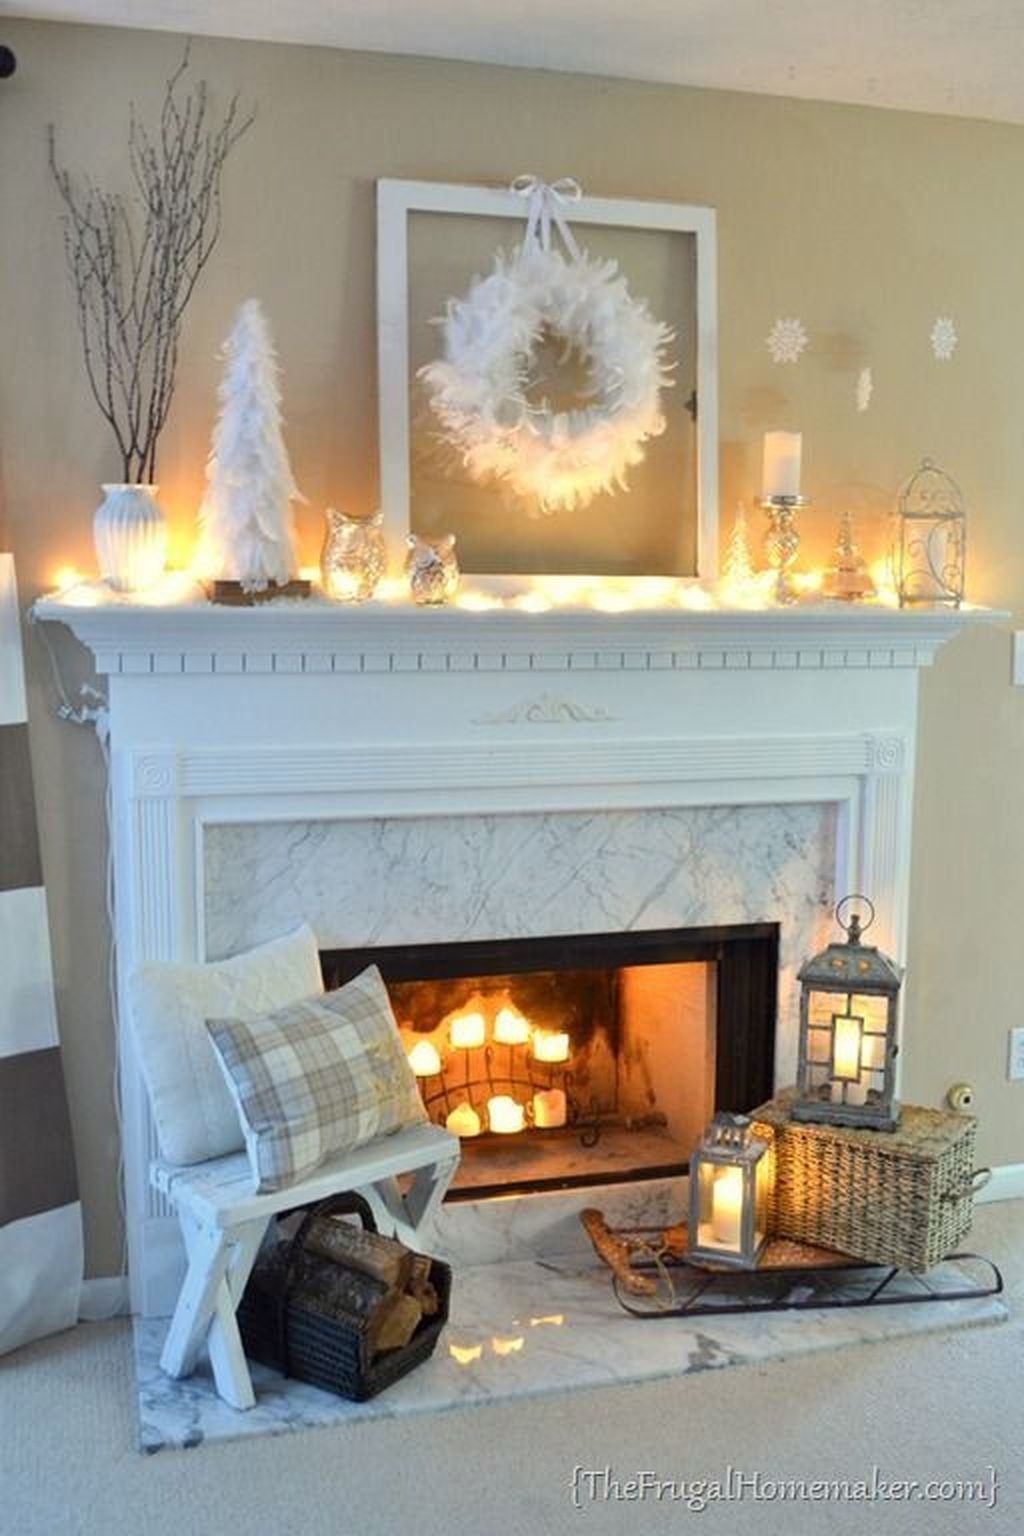 The Best Christmas Fireplace Decoration For Any Home Model 44